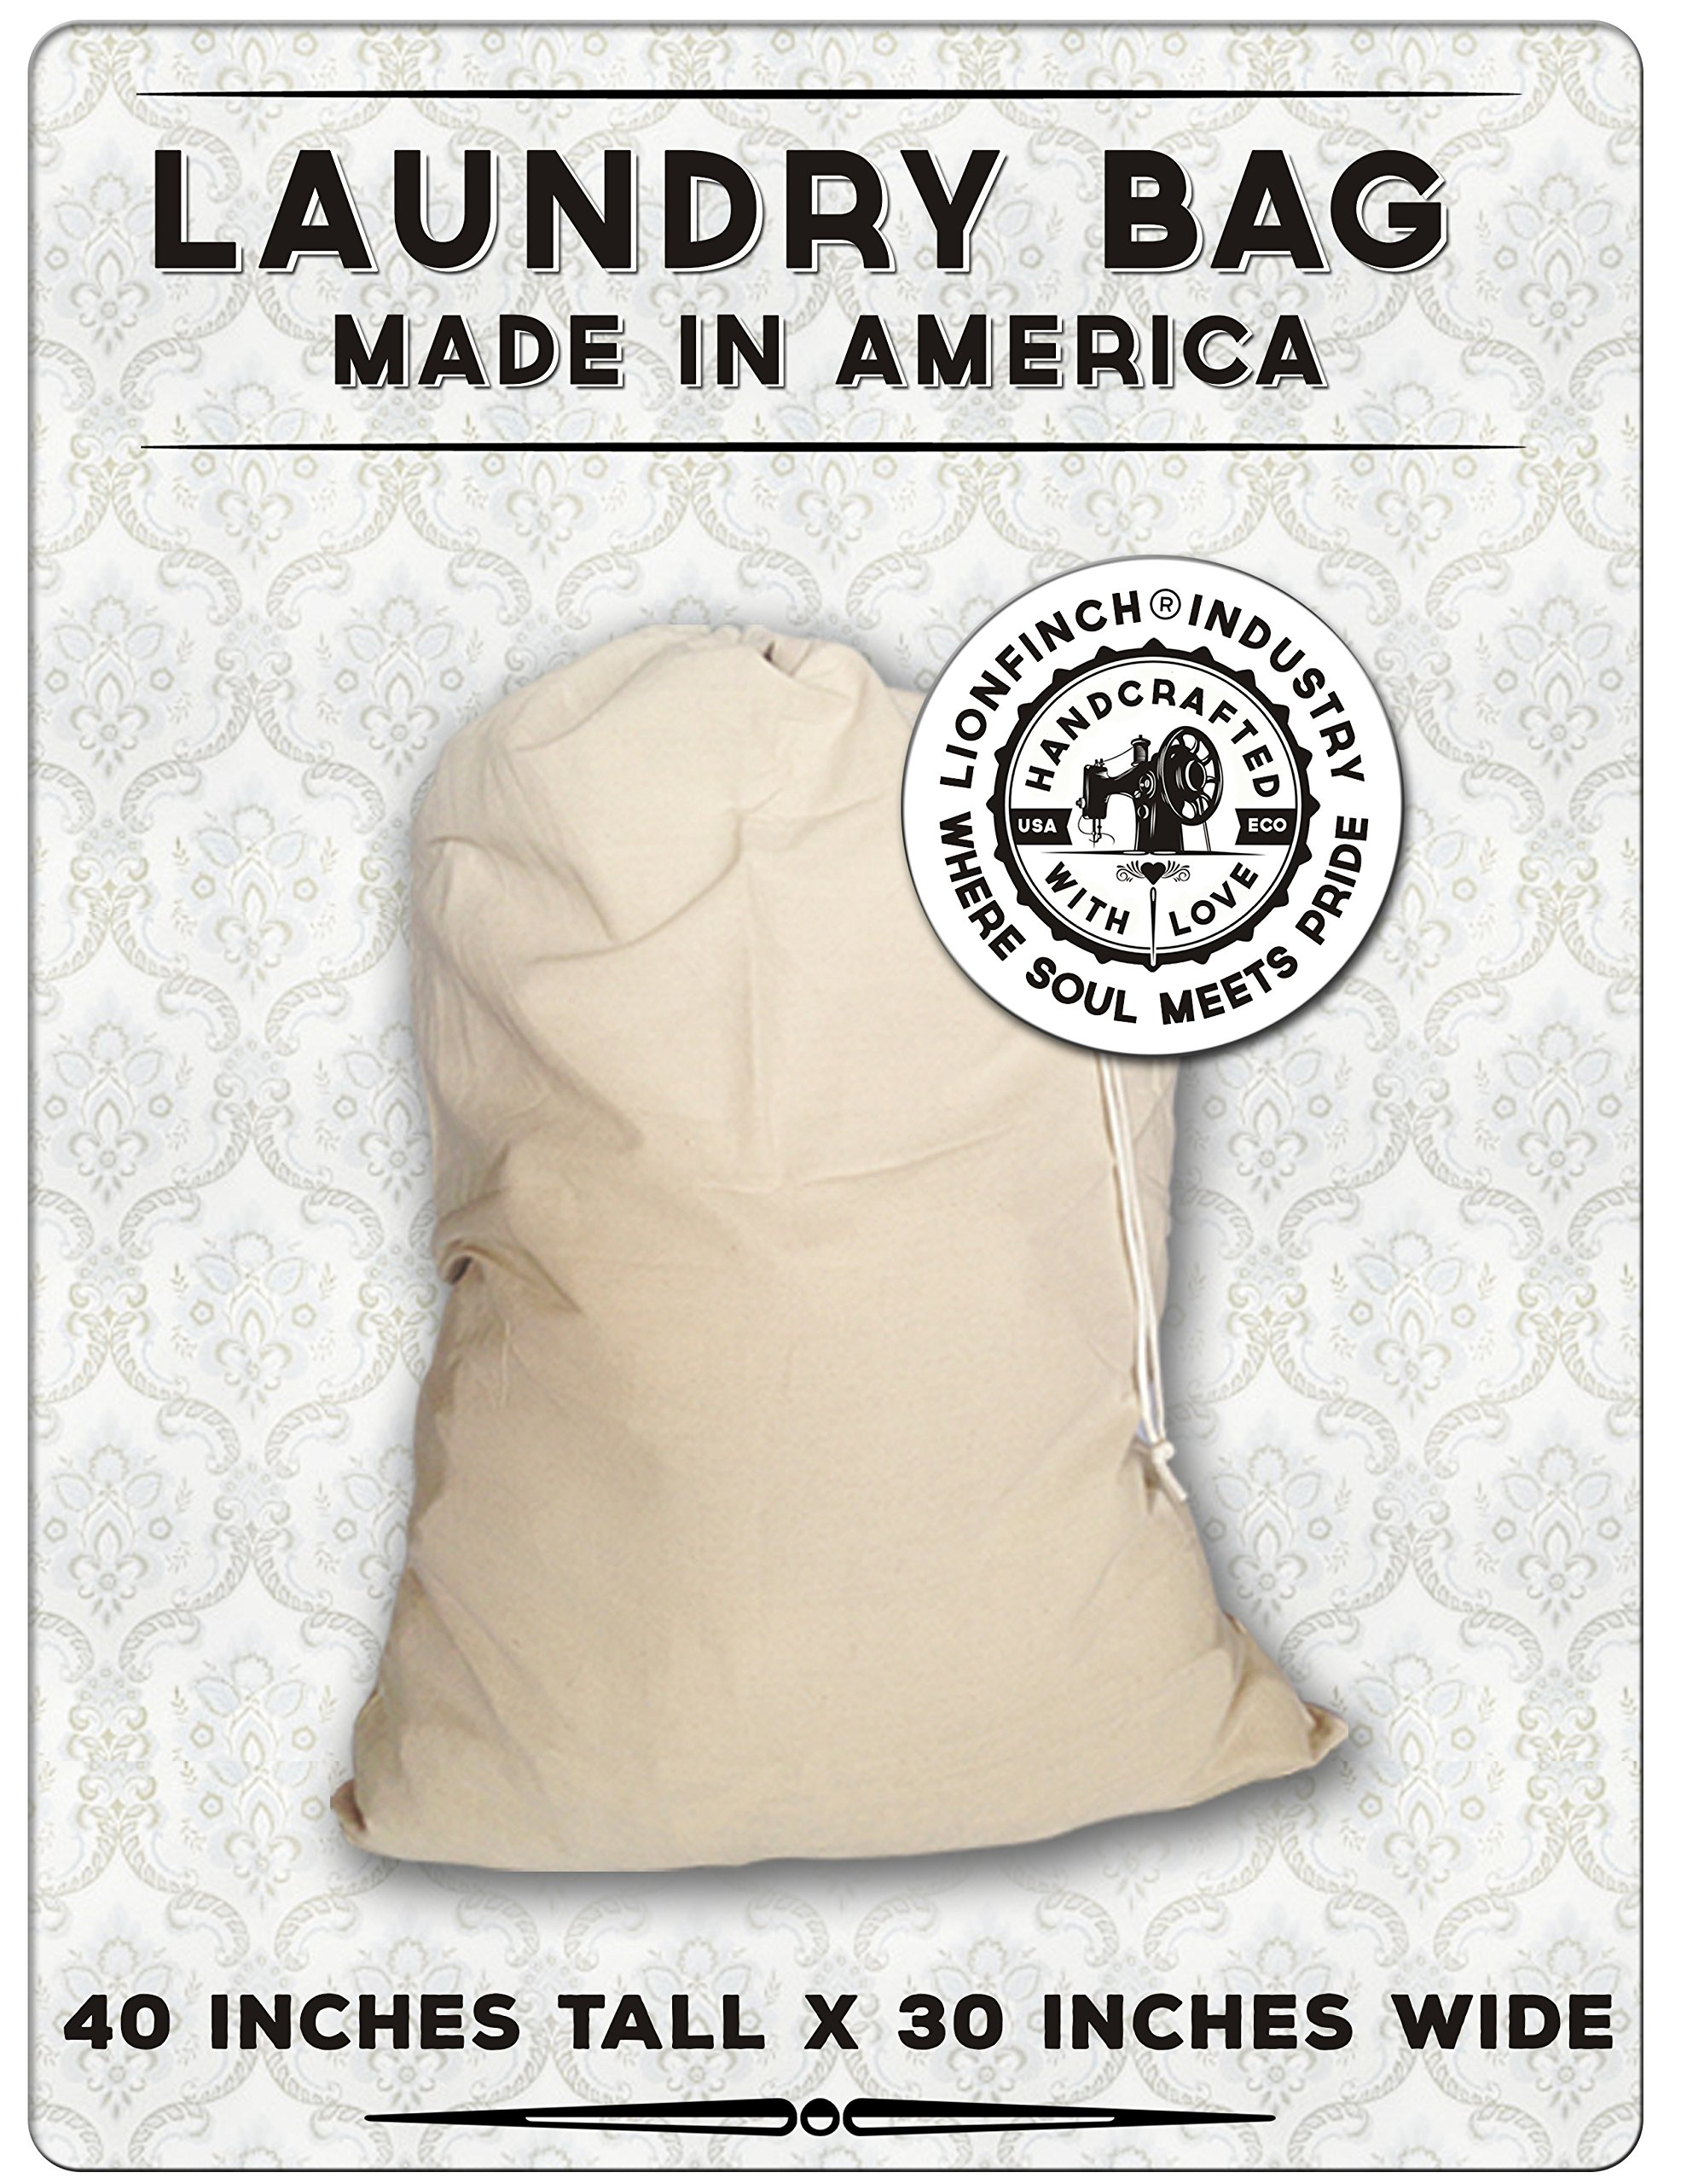 4 Count Laundry Bags-Made in America. Heavy Duty and Oversized. Holds up to 150 Pounds of Laundry. Fits All Hampers. Proudly Made in America